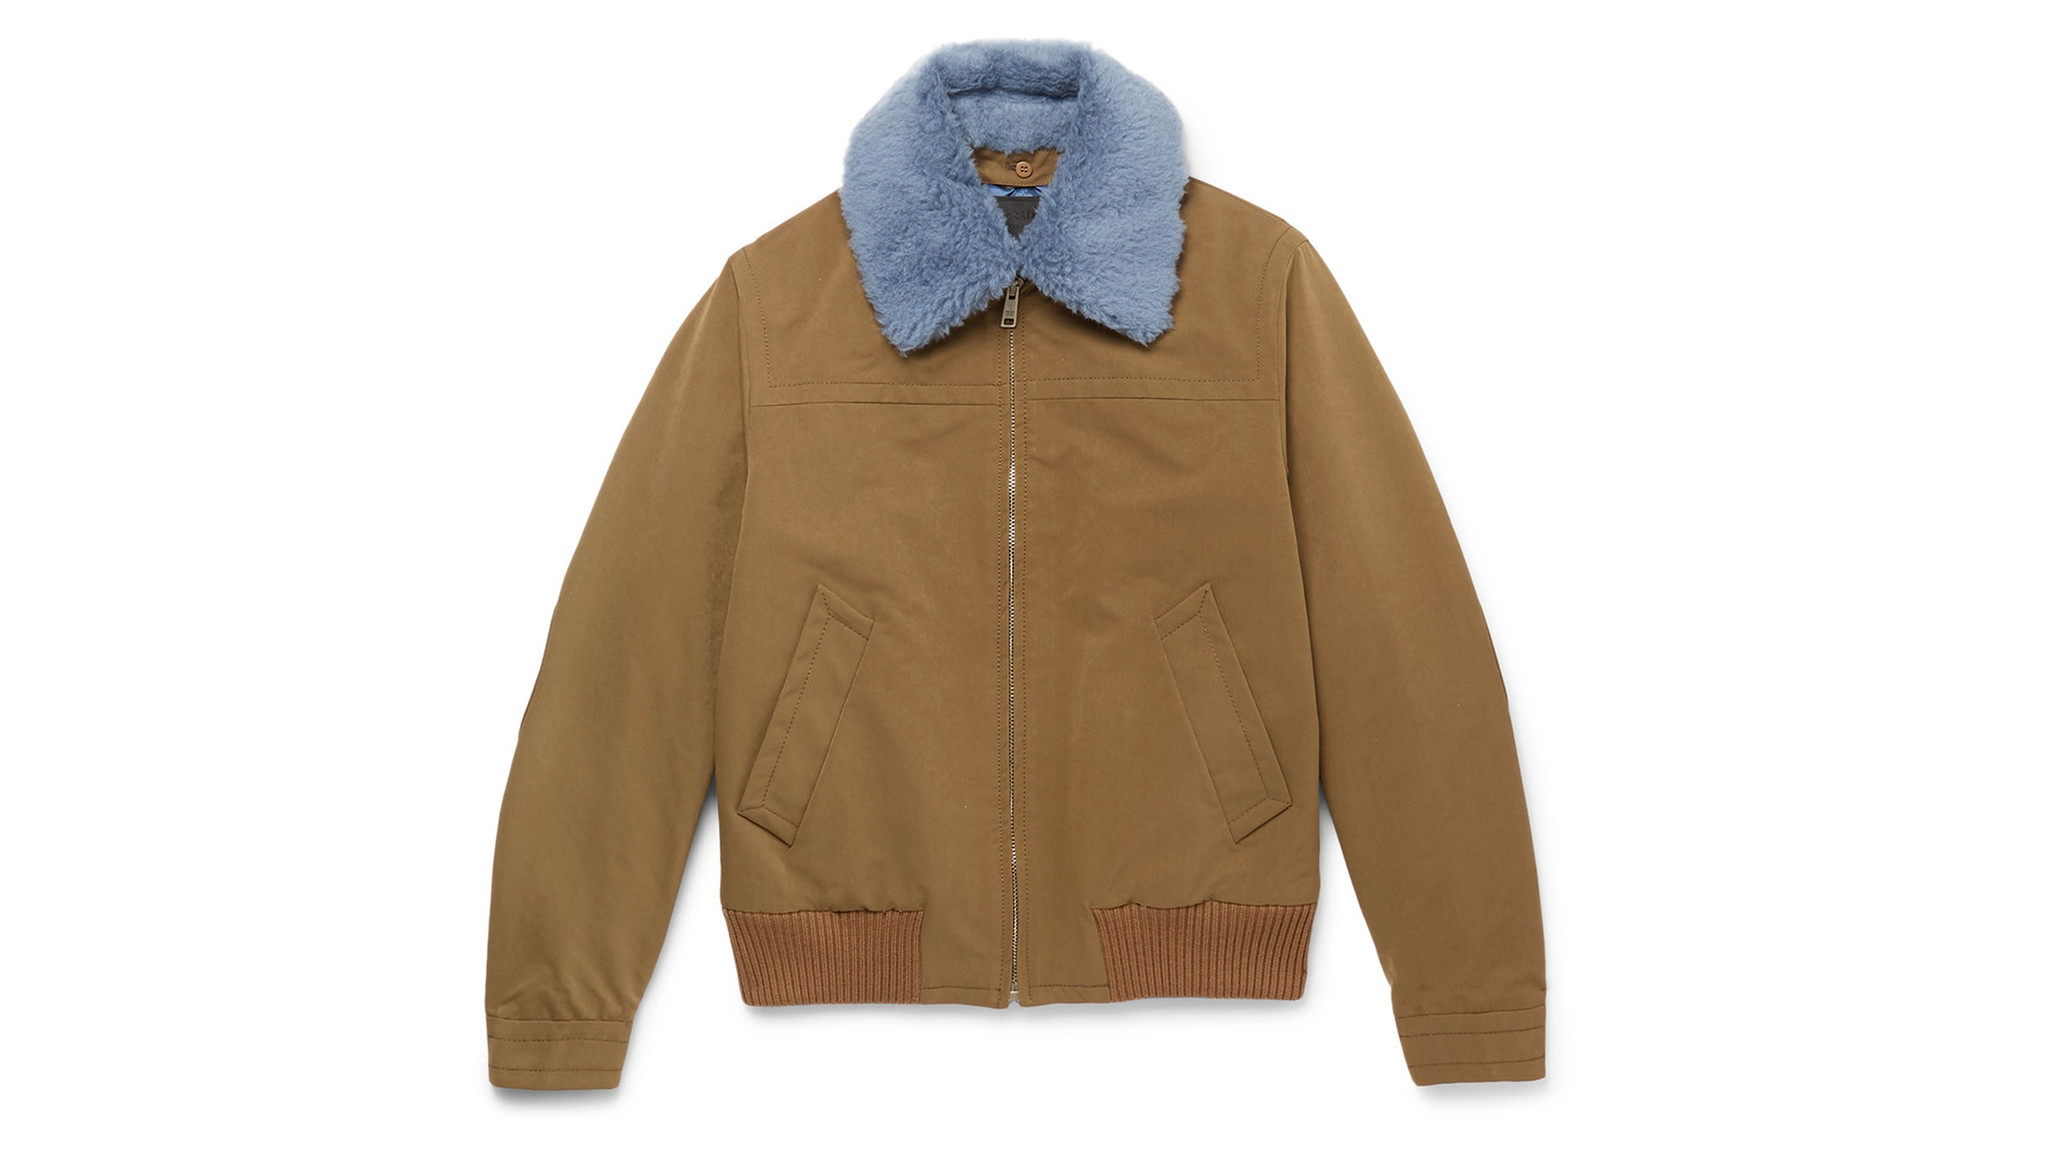 Prada Bomber with shearling collar